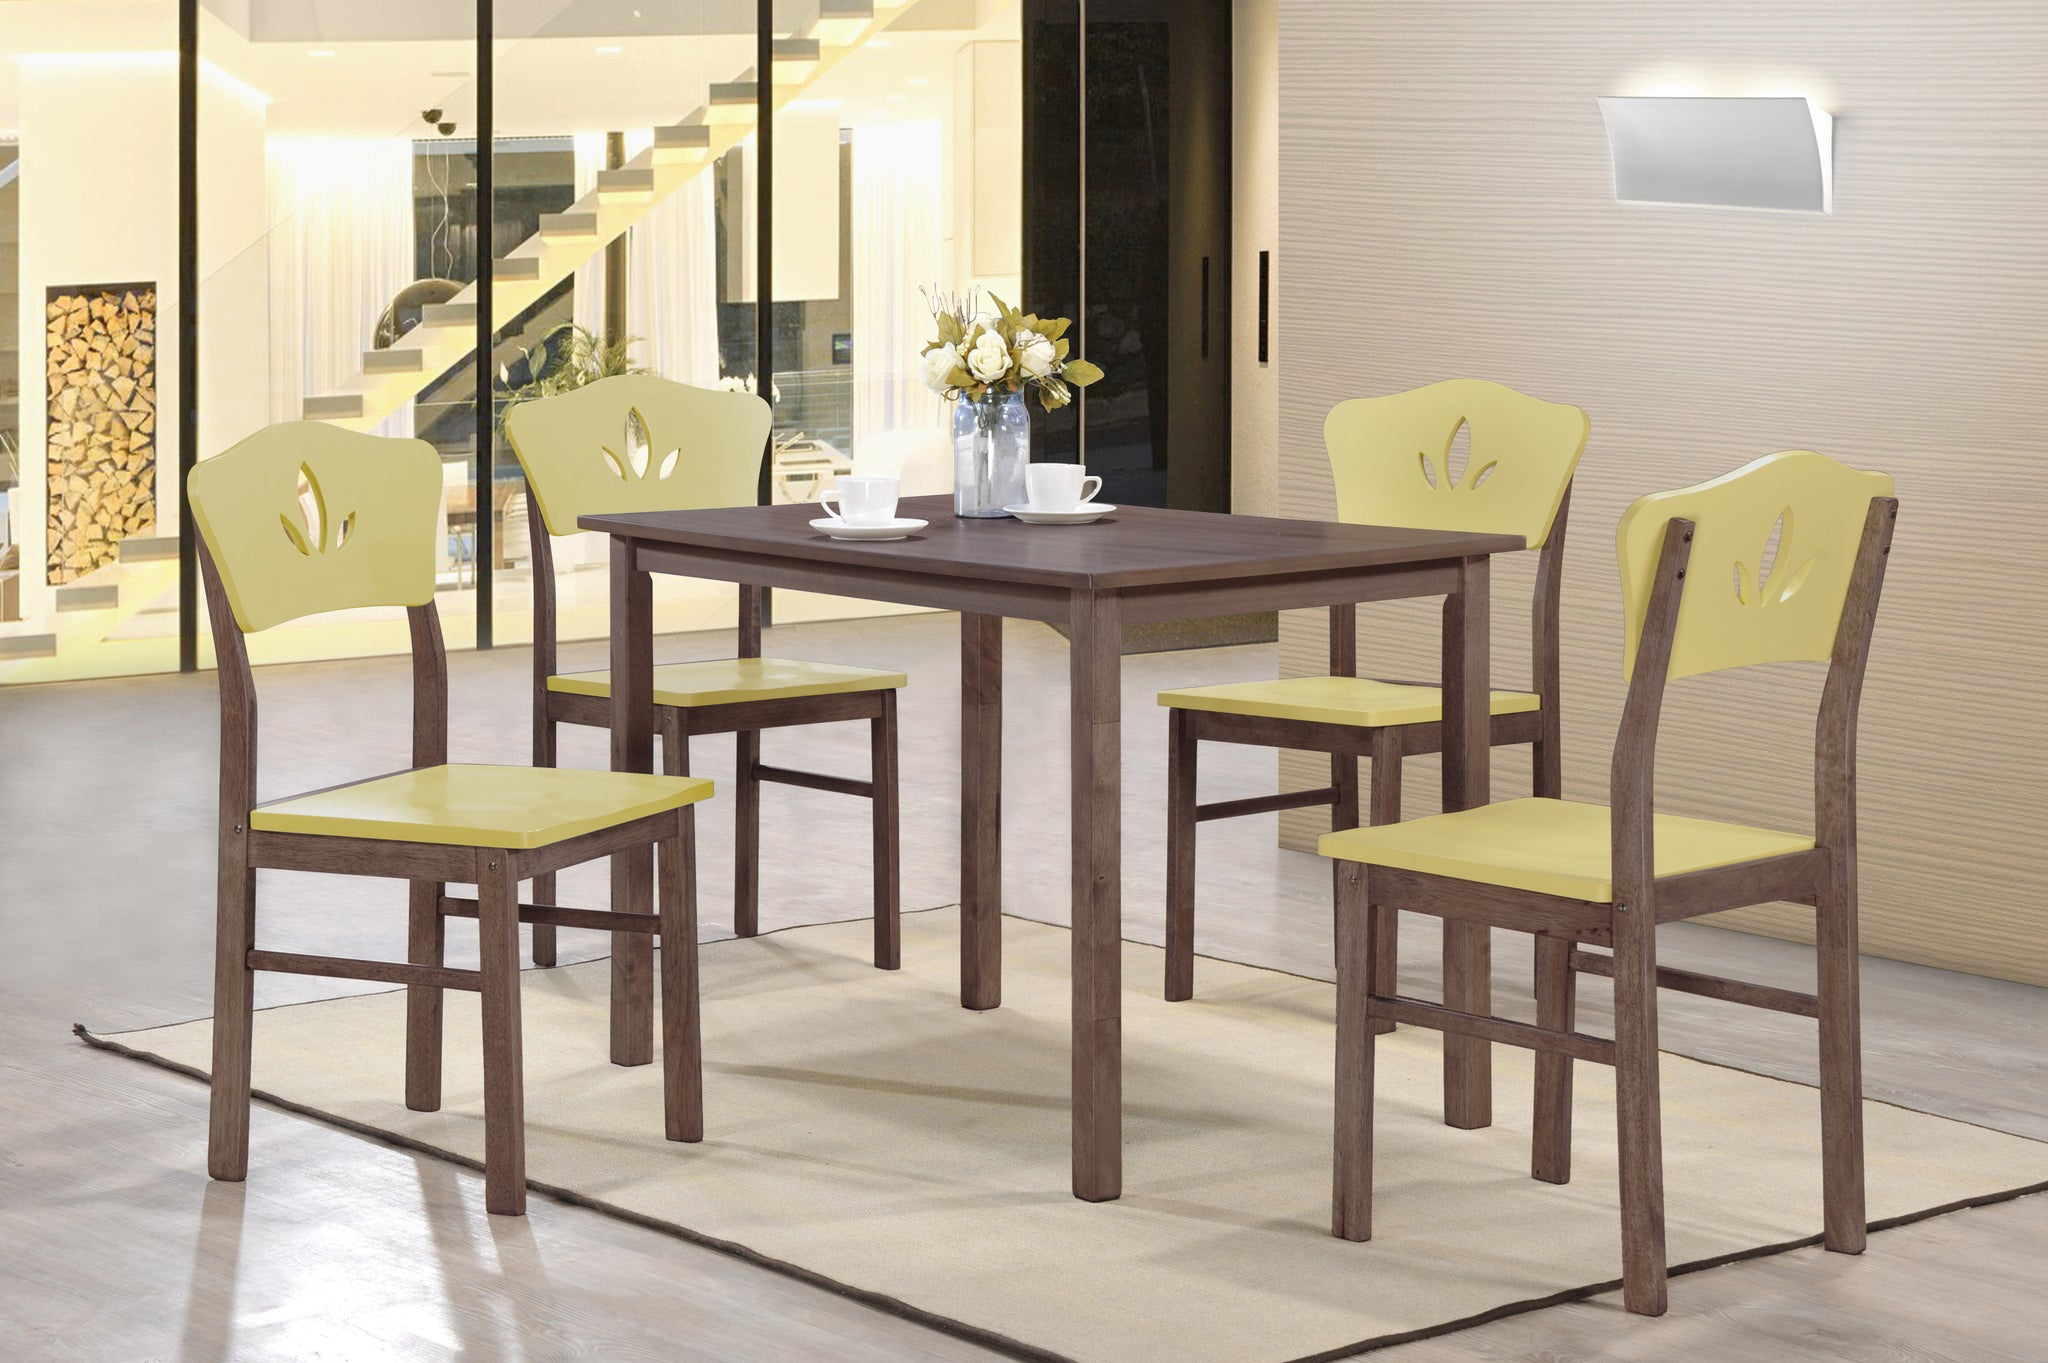 chairs inspirations and table also dinette trends pictures room for images chair sets with ikea tables dining kitchen cheap